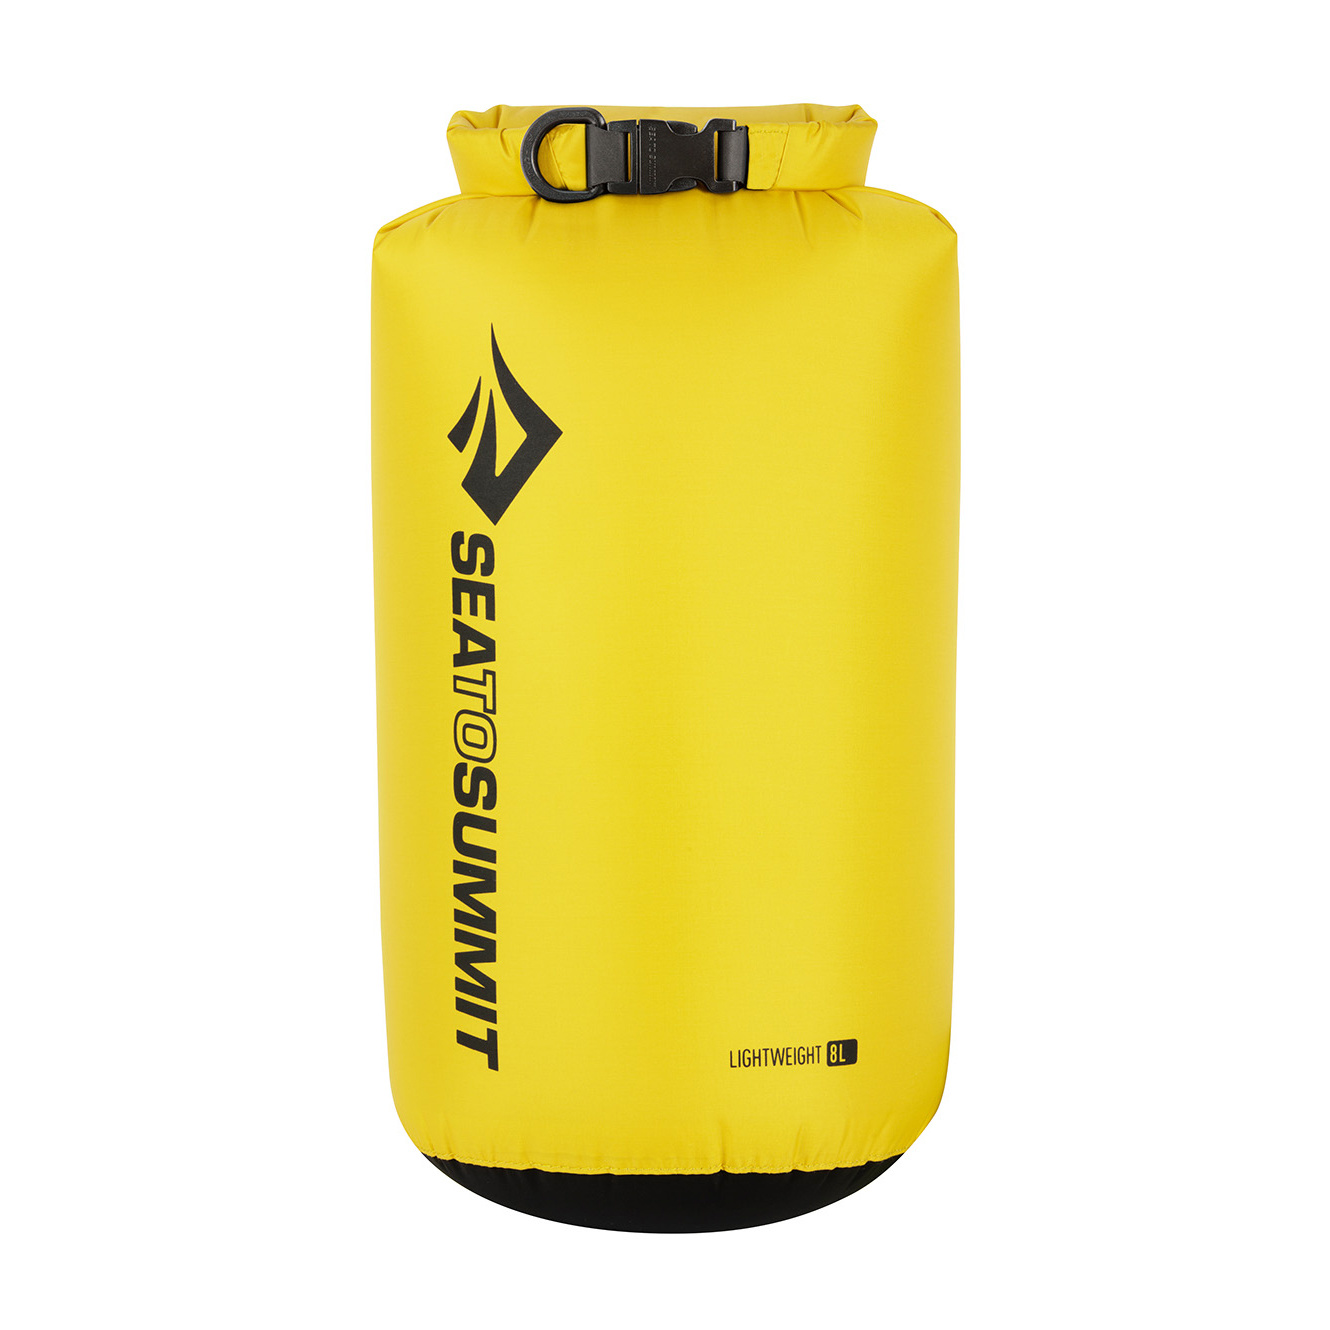 Sea to Summit Lightweight DrySack, 8 Liter